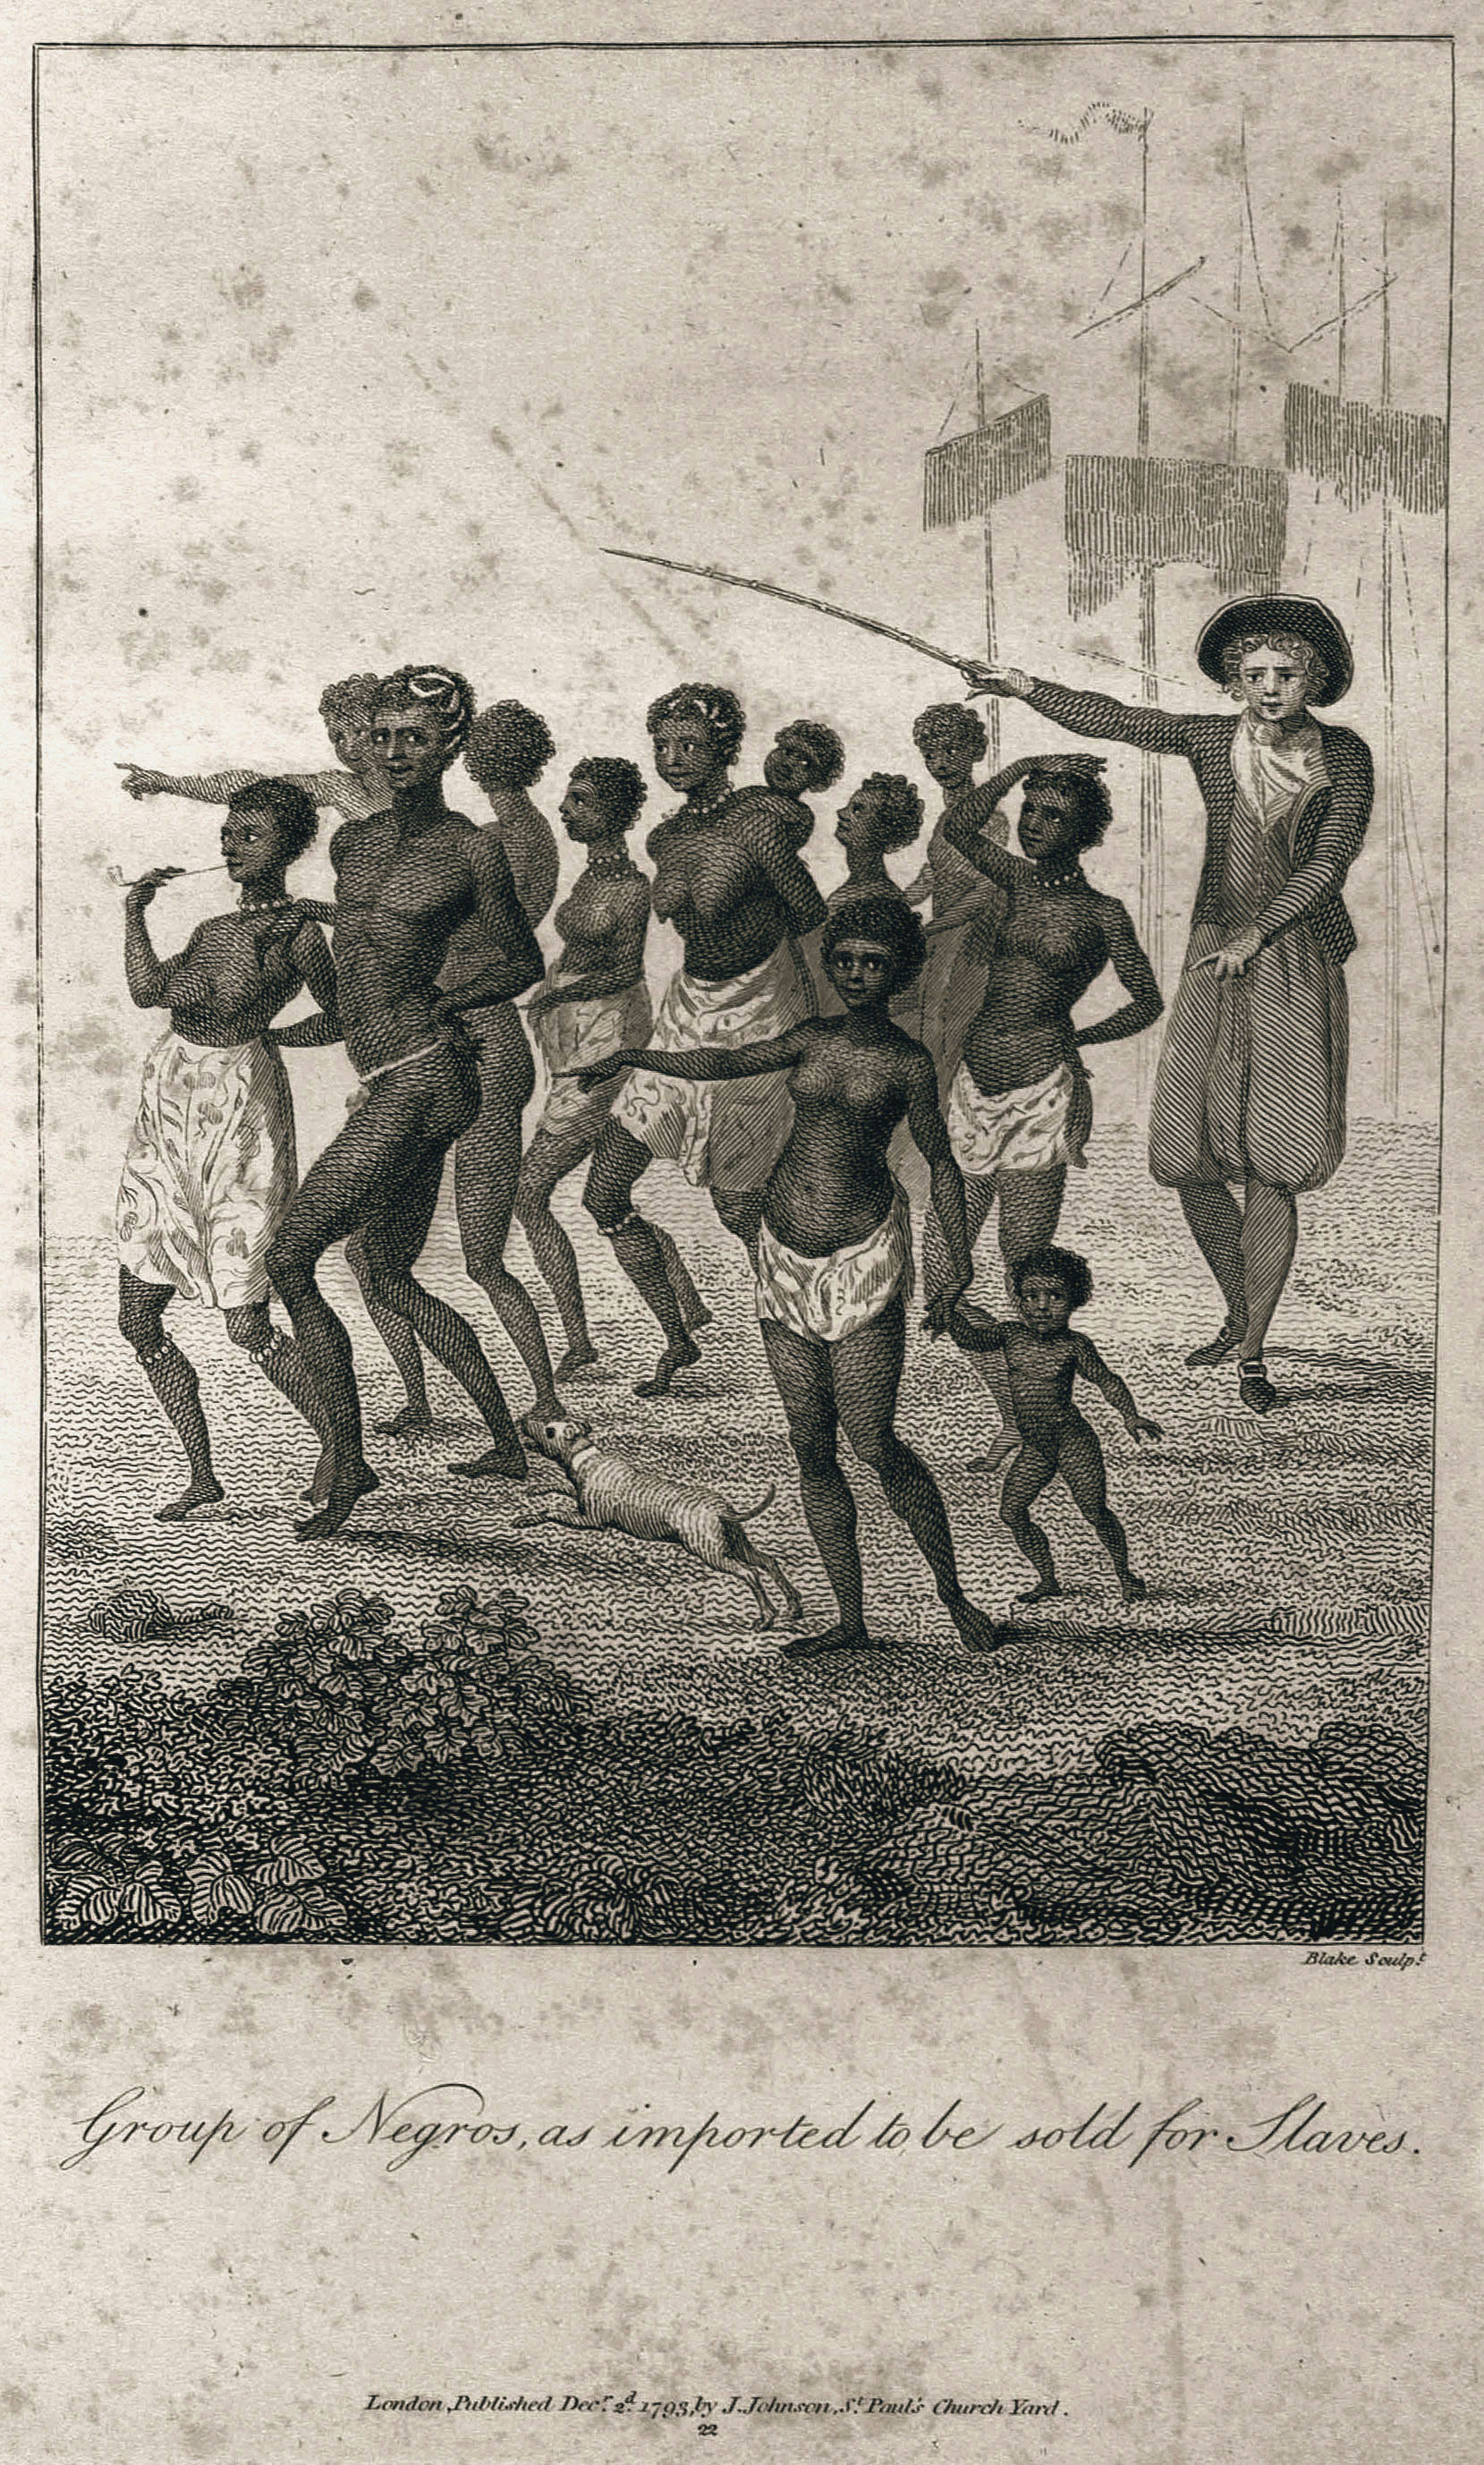 Blake Sculpt. 	Group of Negros, as imported to be sold for Slaves. 	London, Published Dec.r 2.d 1793, by J. Johnson, St. Paul's Church Yard. 	22